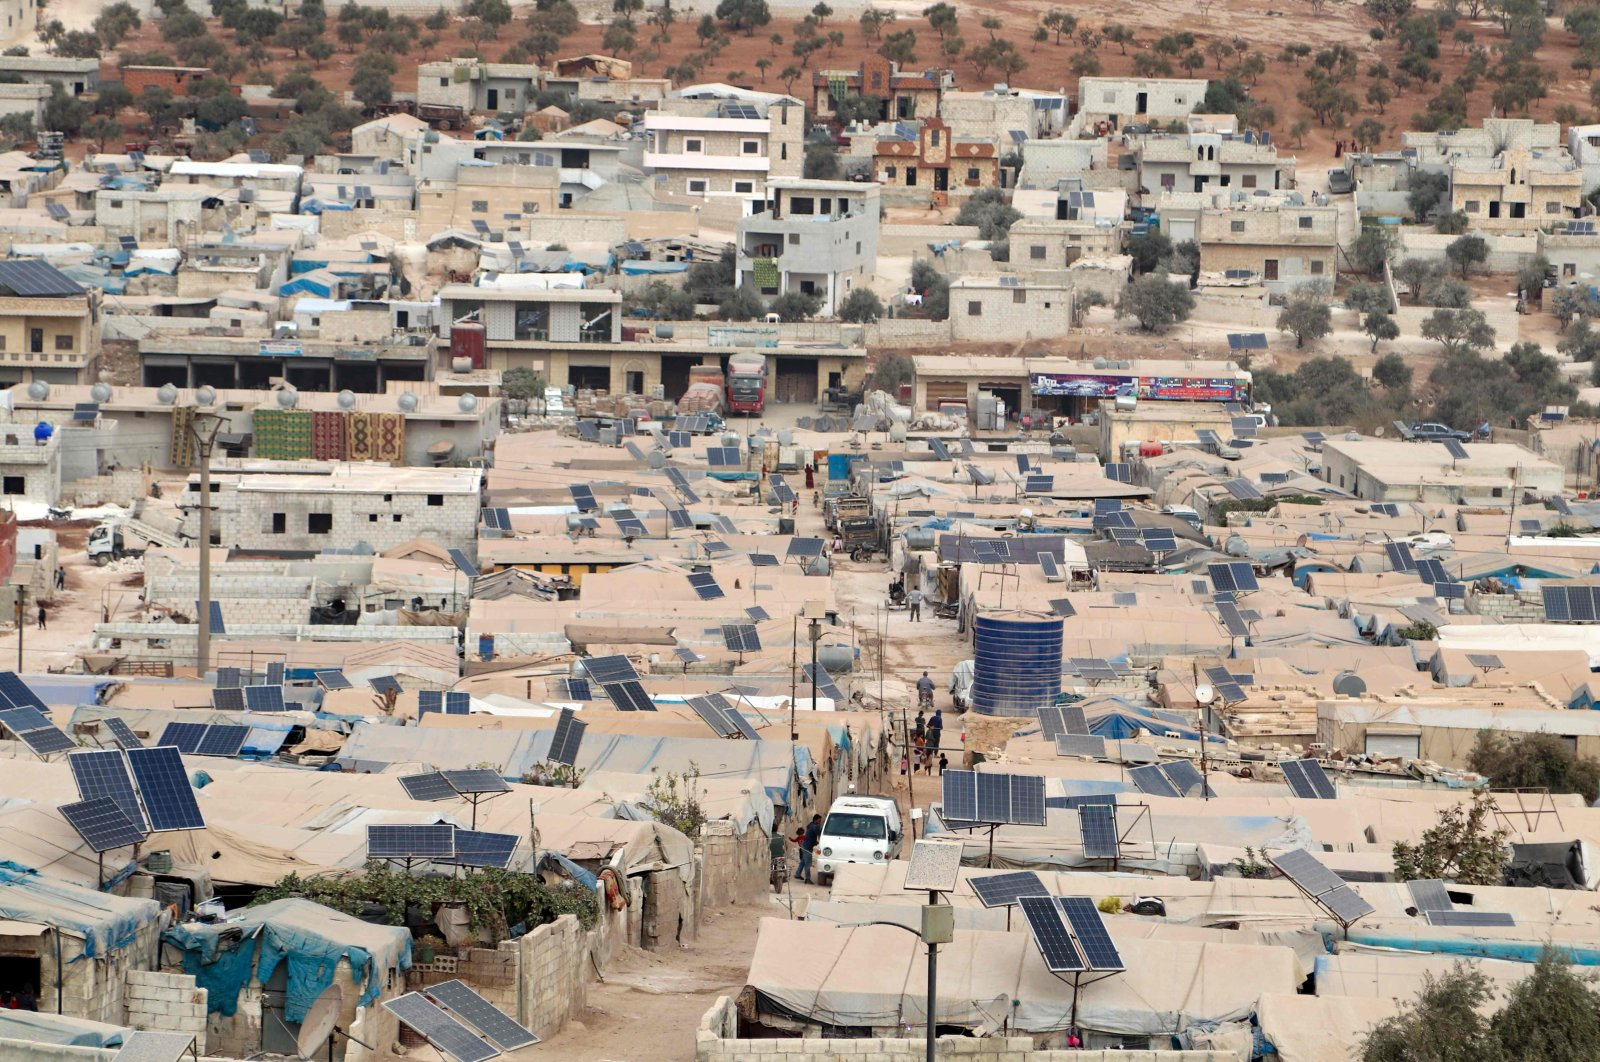 This picture shows a partial view of an overcrowded displacement camp near the village of Qah near the Turkish border in northwestern Idlib province, Syria, Oct. 28, 2020. (AFP Photo)